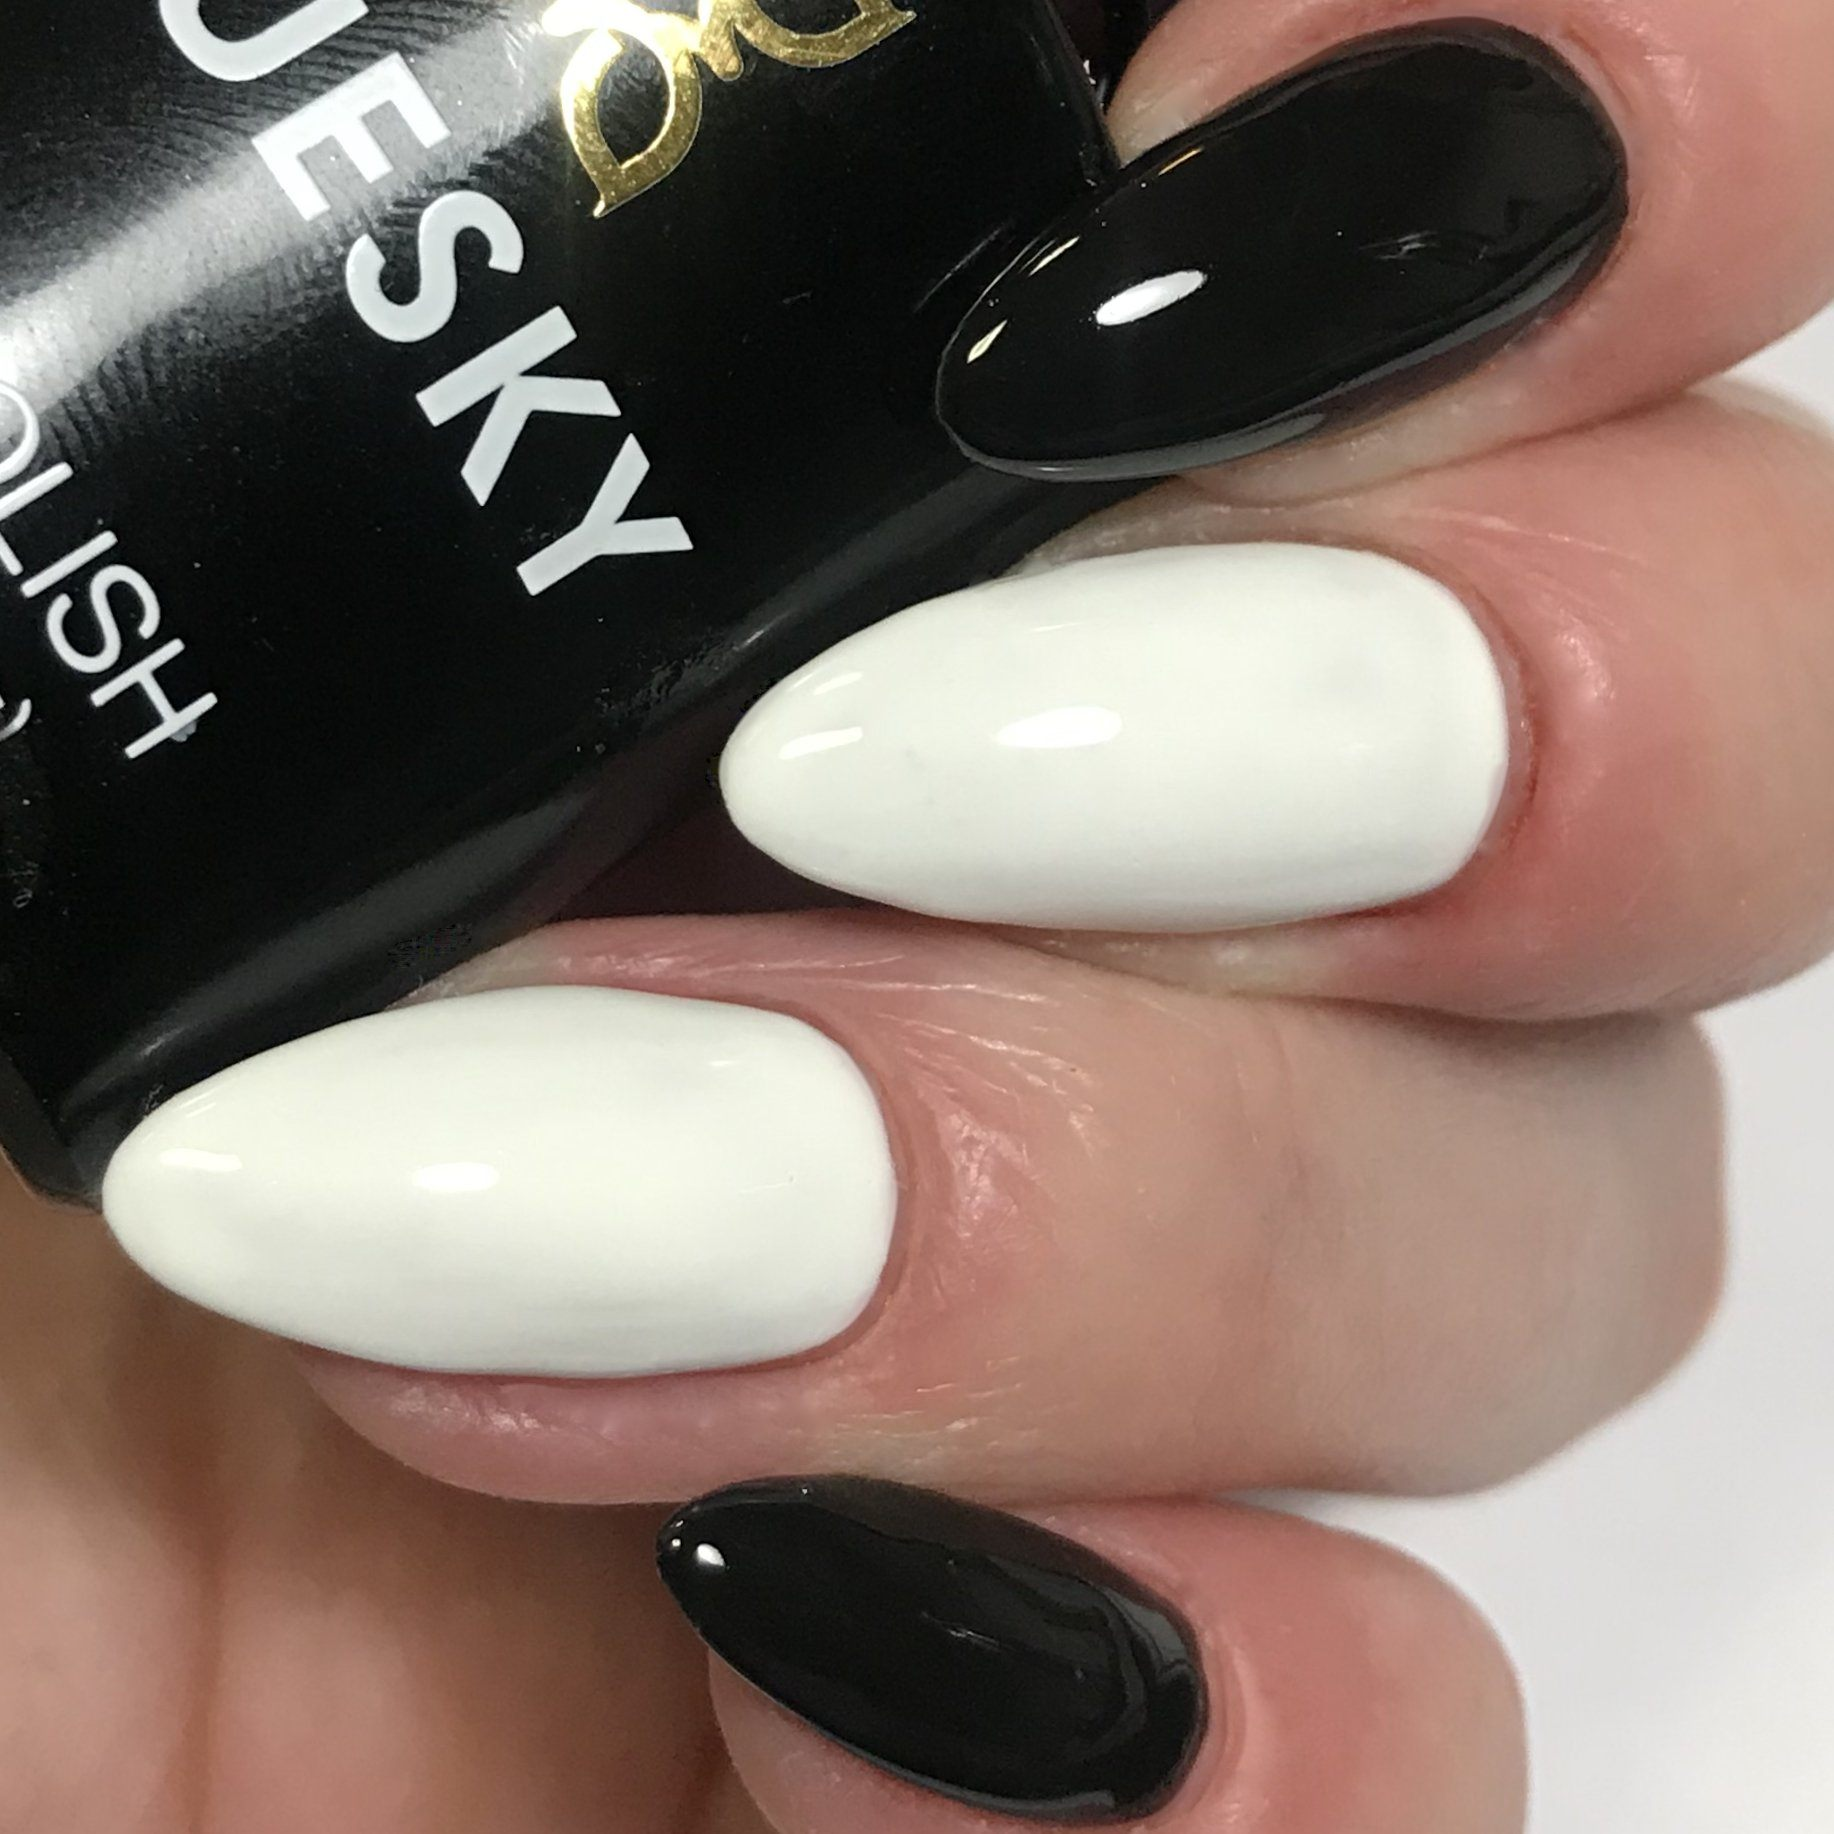 Bluesky Combo 80518 BLACKPOOL & CS61 PURE WHITE UV/LED Soak Off Gel Nail Polish - Bluesky Nail Gel Polish